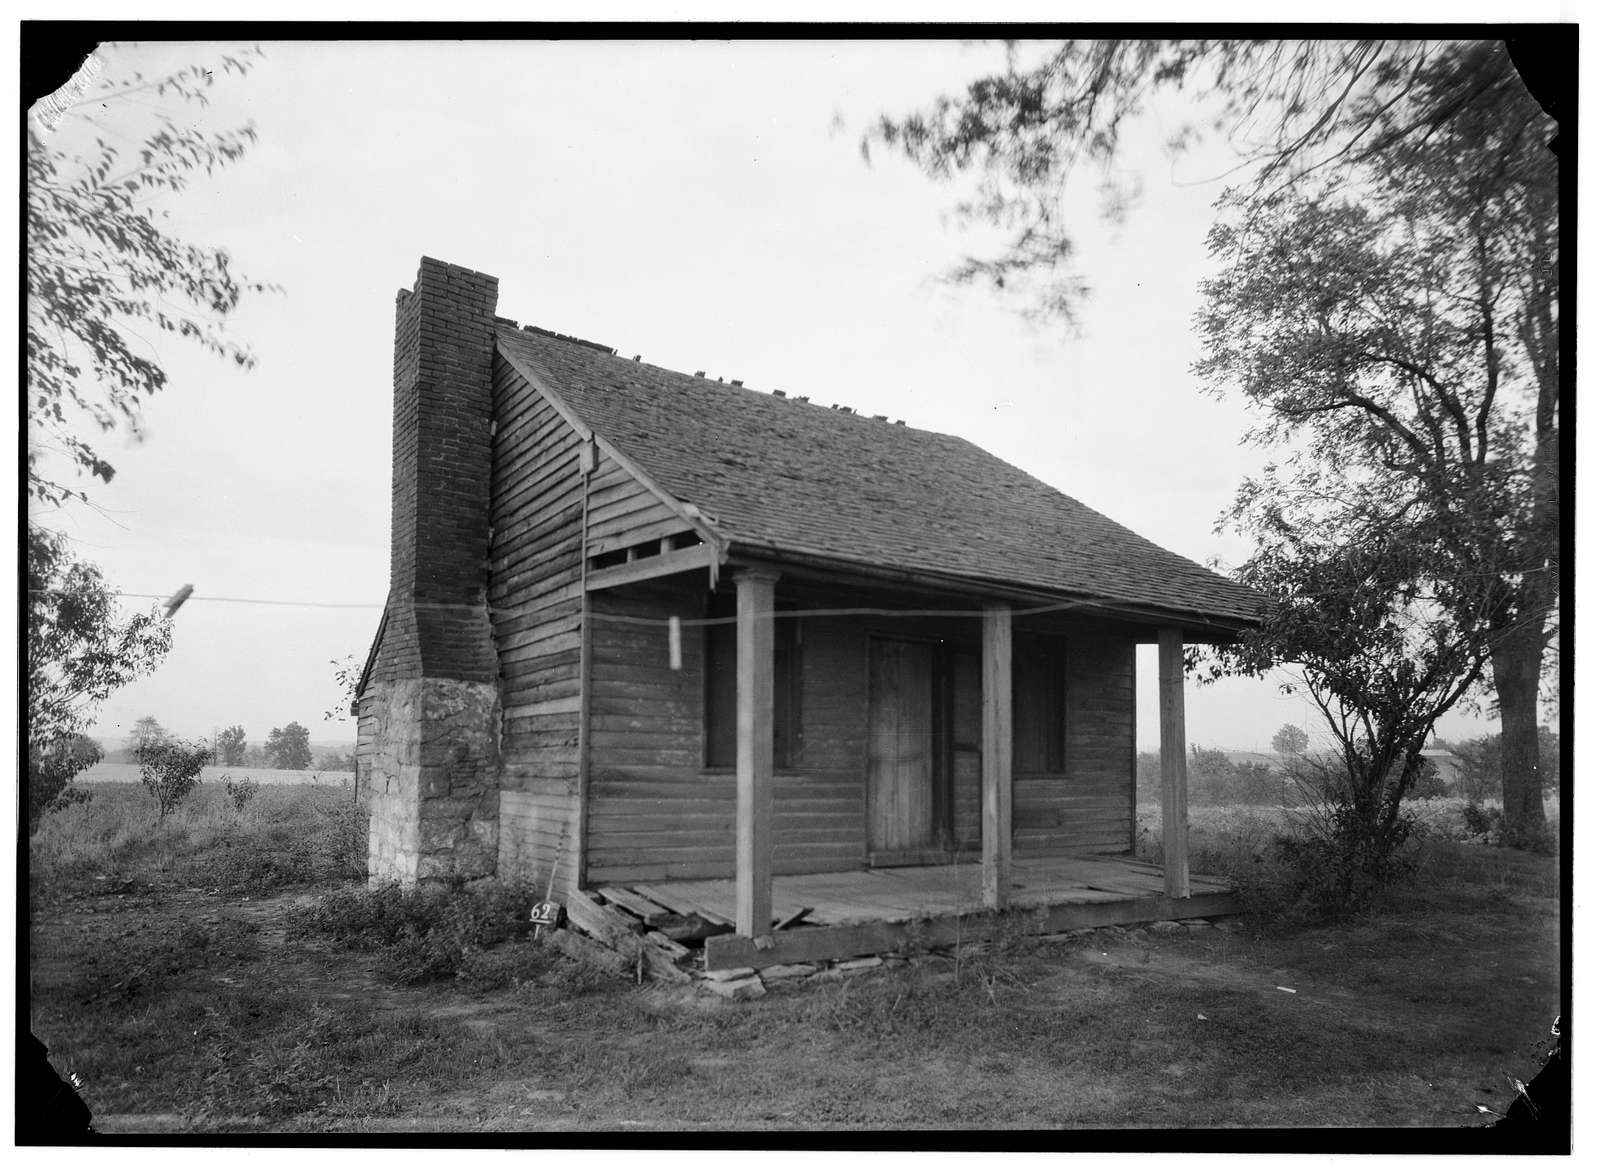 Jacob Coonce Log Cabin, Weldon Spring, St. Charles County, MO